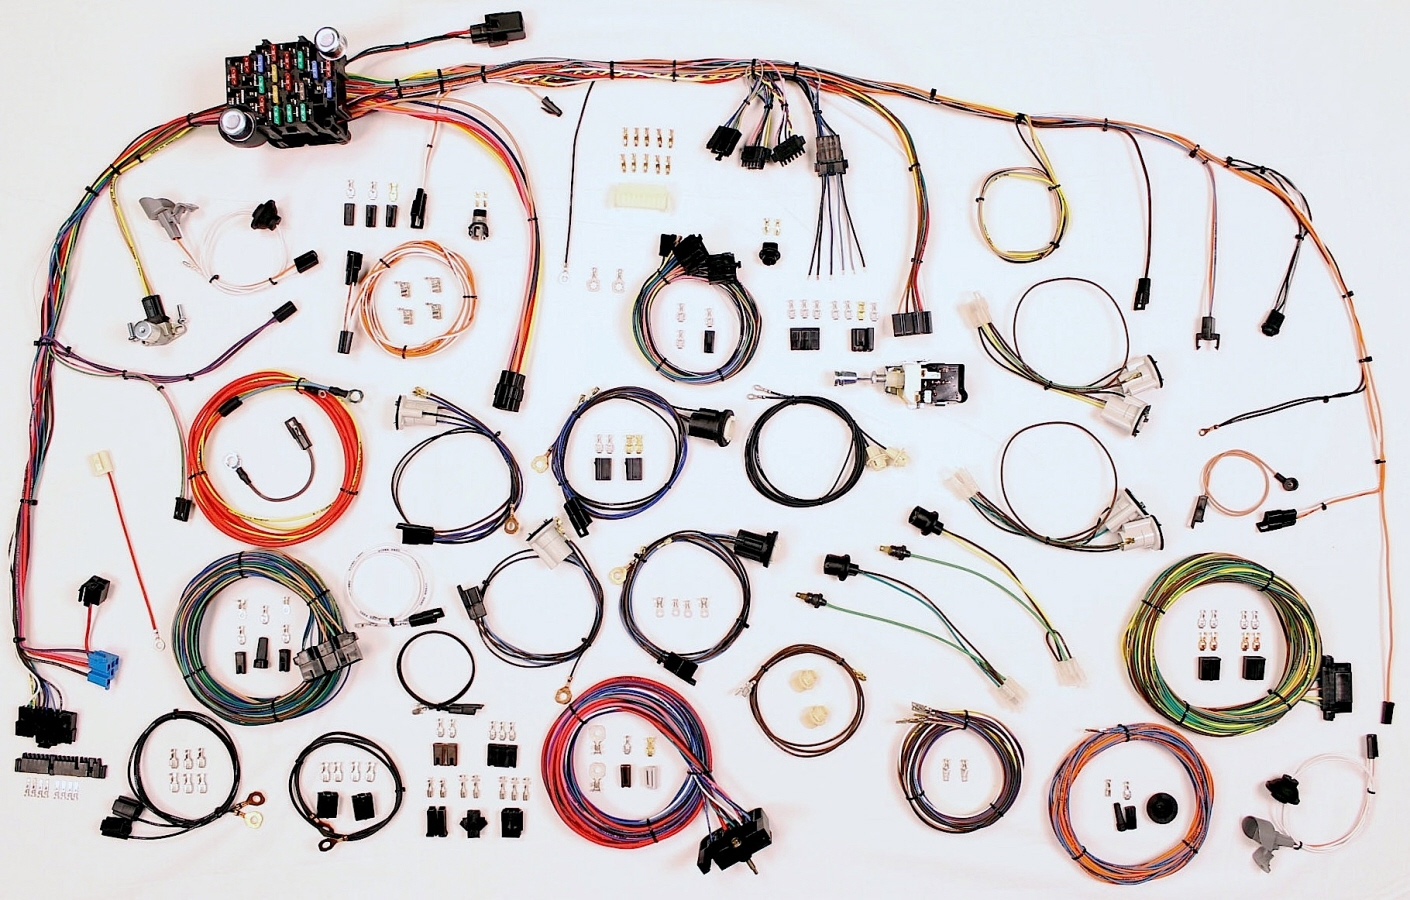 hight resolution of 73 82 chevy gmc classic update harness kit 510347 73 gmc wiring harness source custom 73 impala